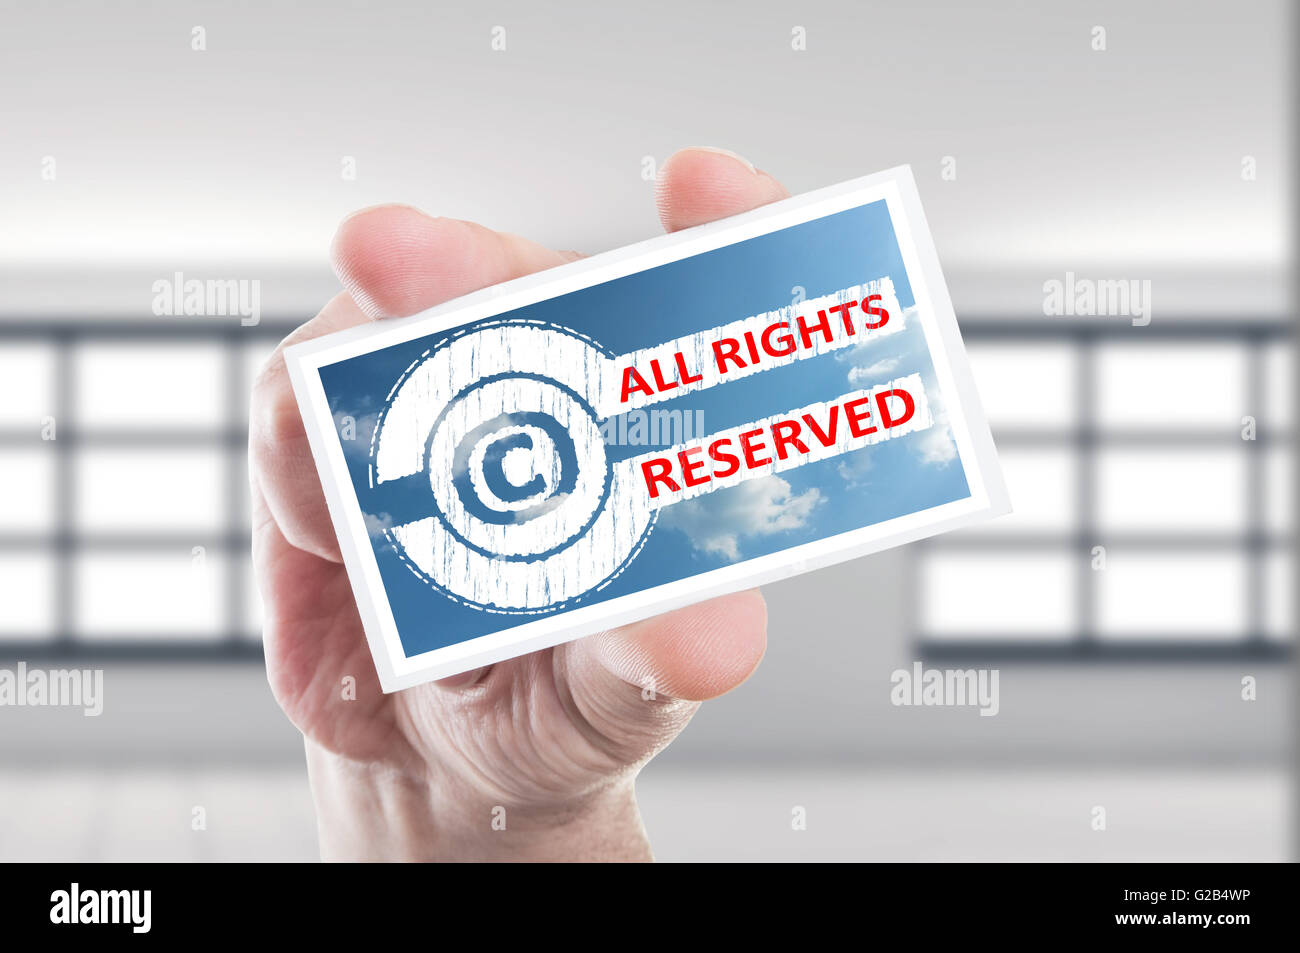 hand holding copyright all rights reserved concept card Stock Photo